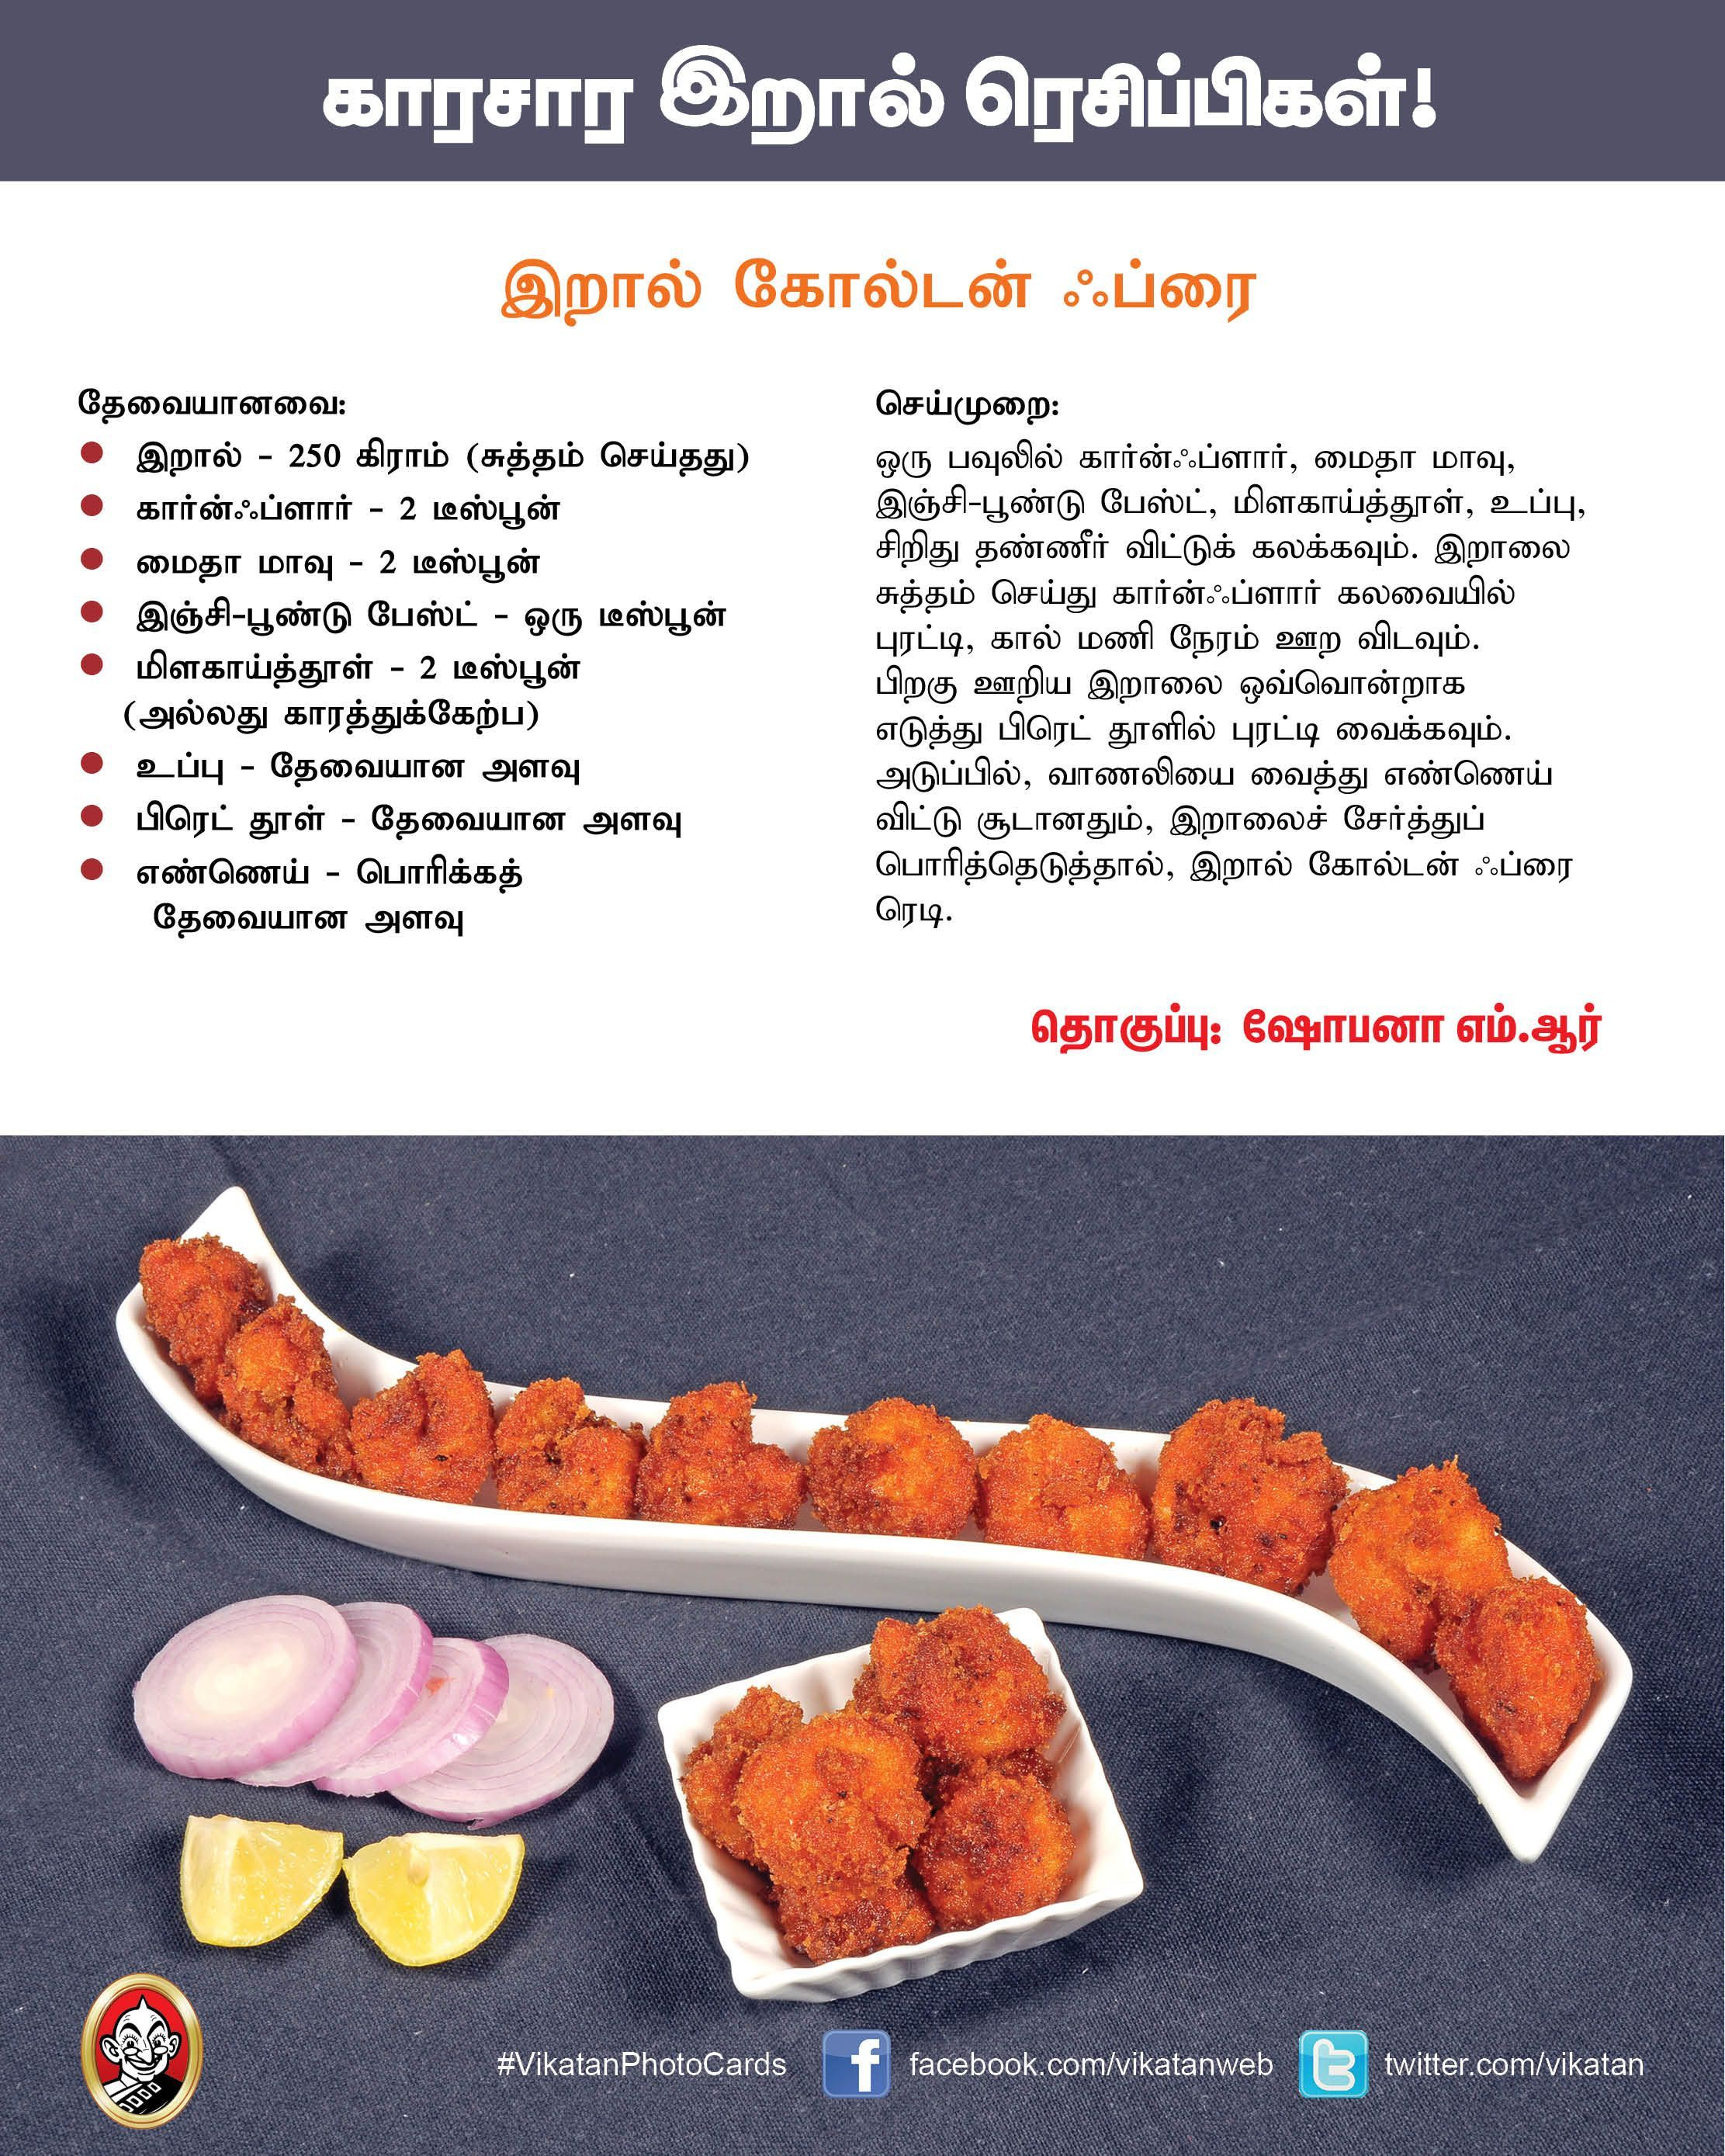 Recipes list of spicy shrimp non veg dishes pinterest recipe recipes list of spicy shrimp veg dishesspicy forumfinder Images